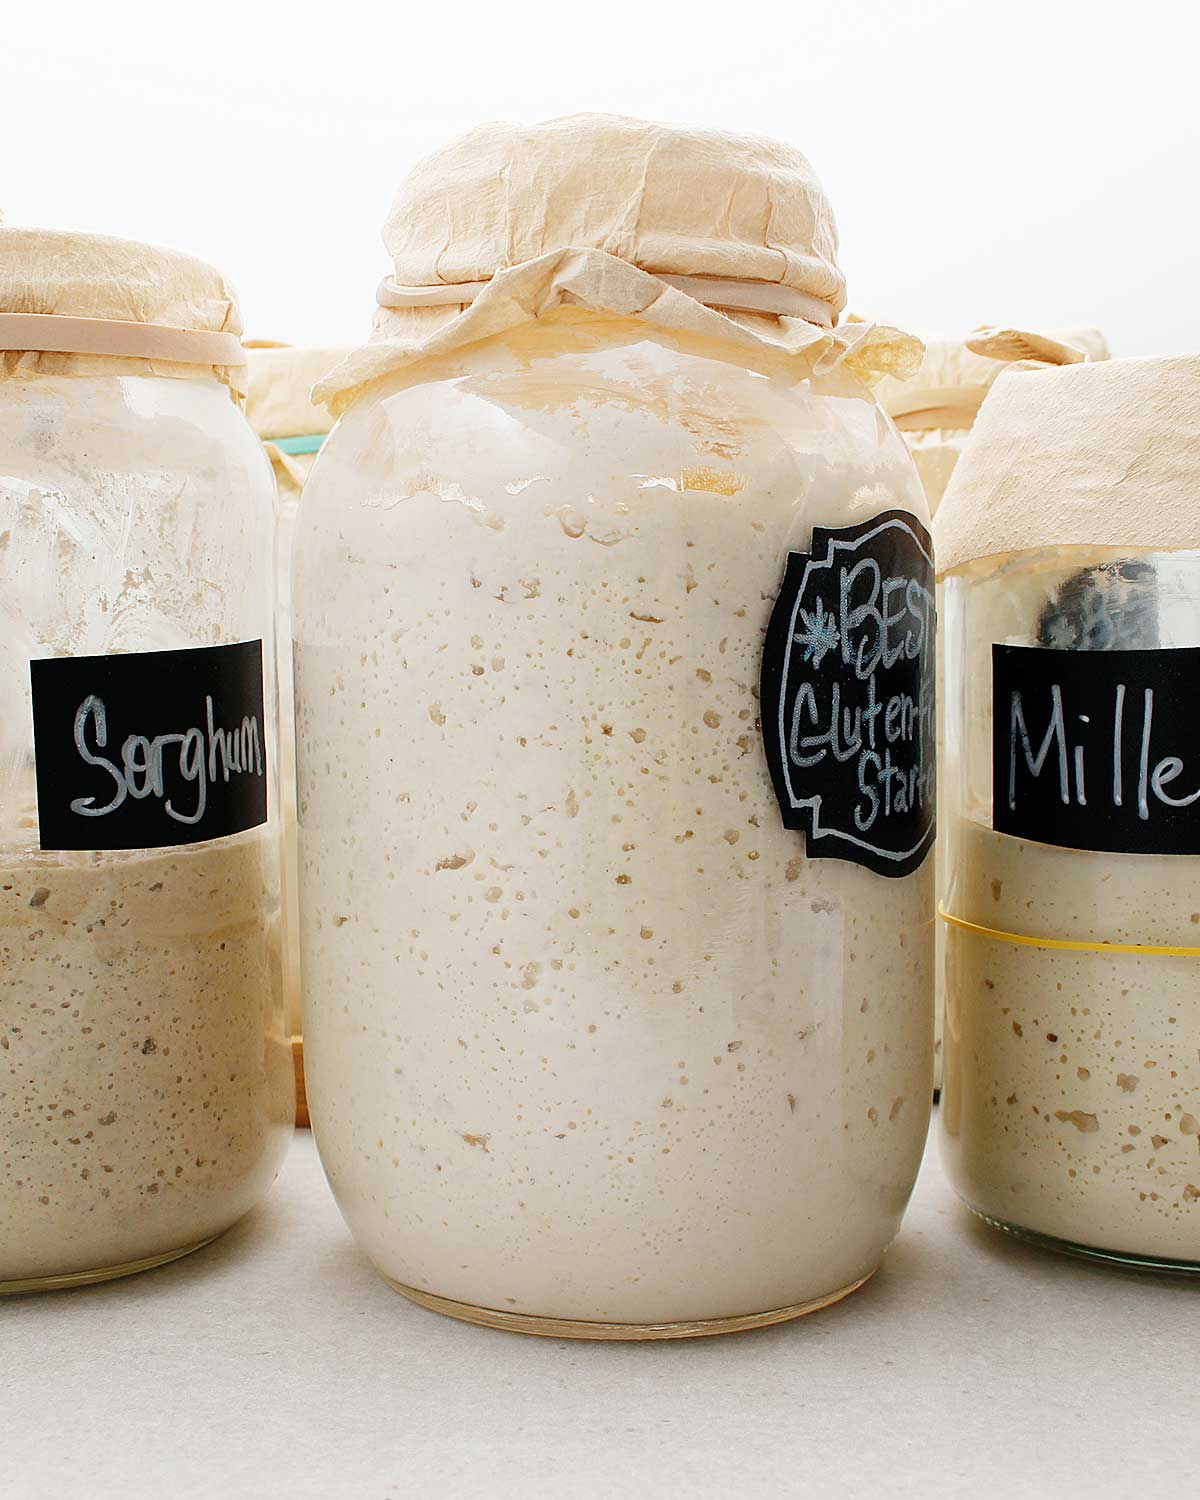 Gluten-free sourdough starters made with sorghum, brown rice and millet flour